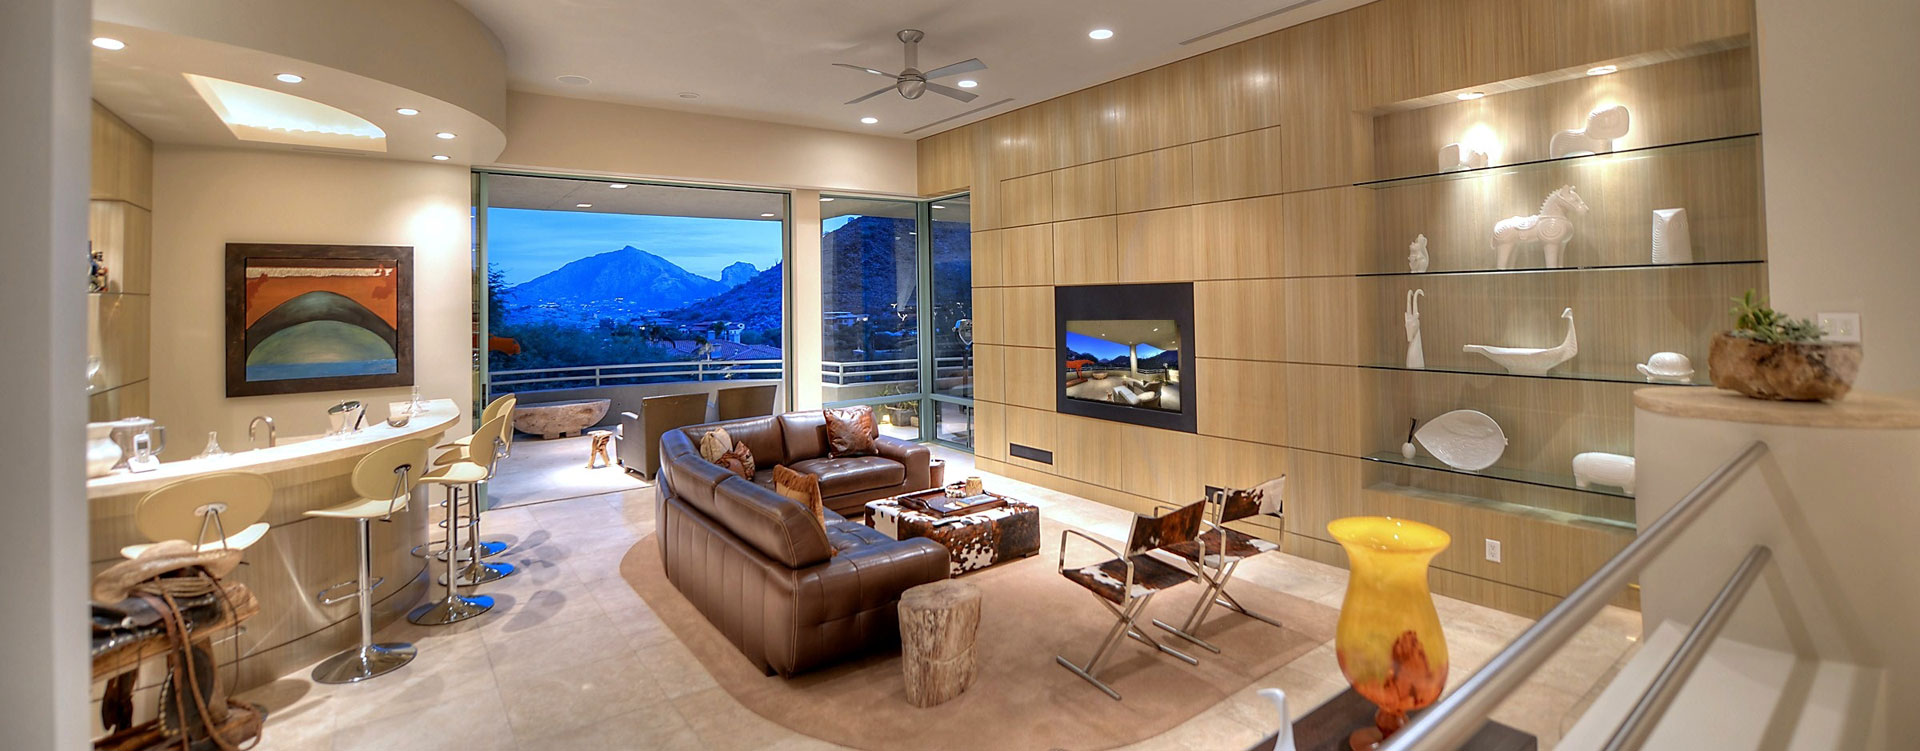 FamilyRoom_Featured